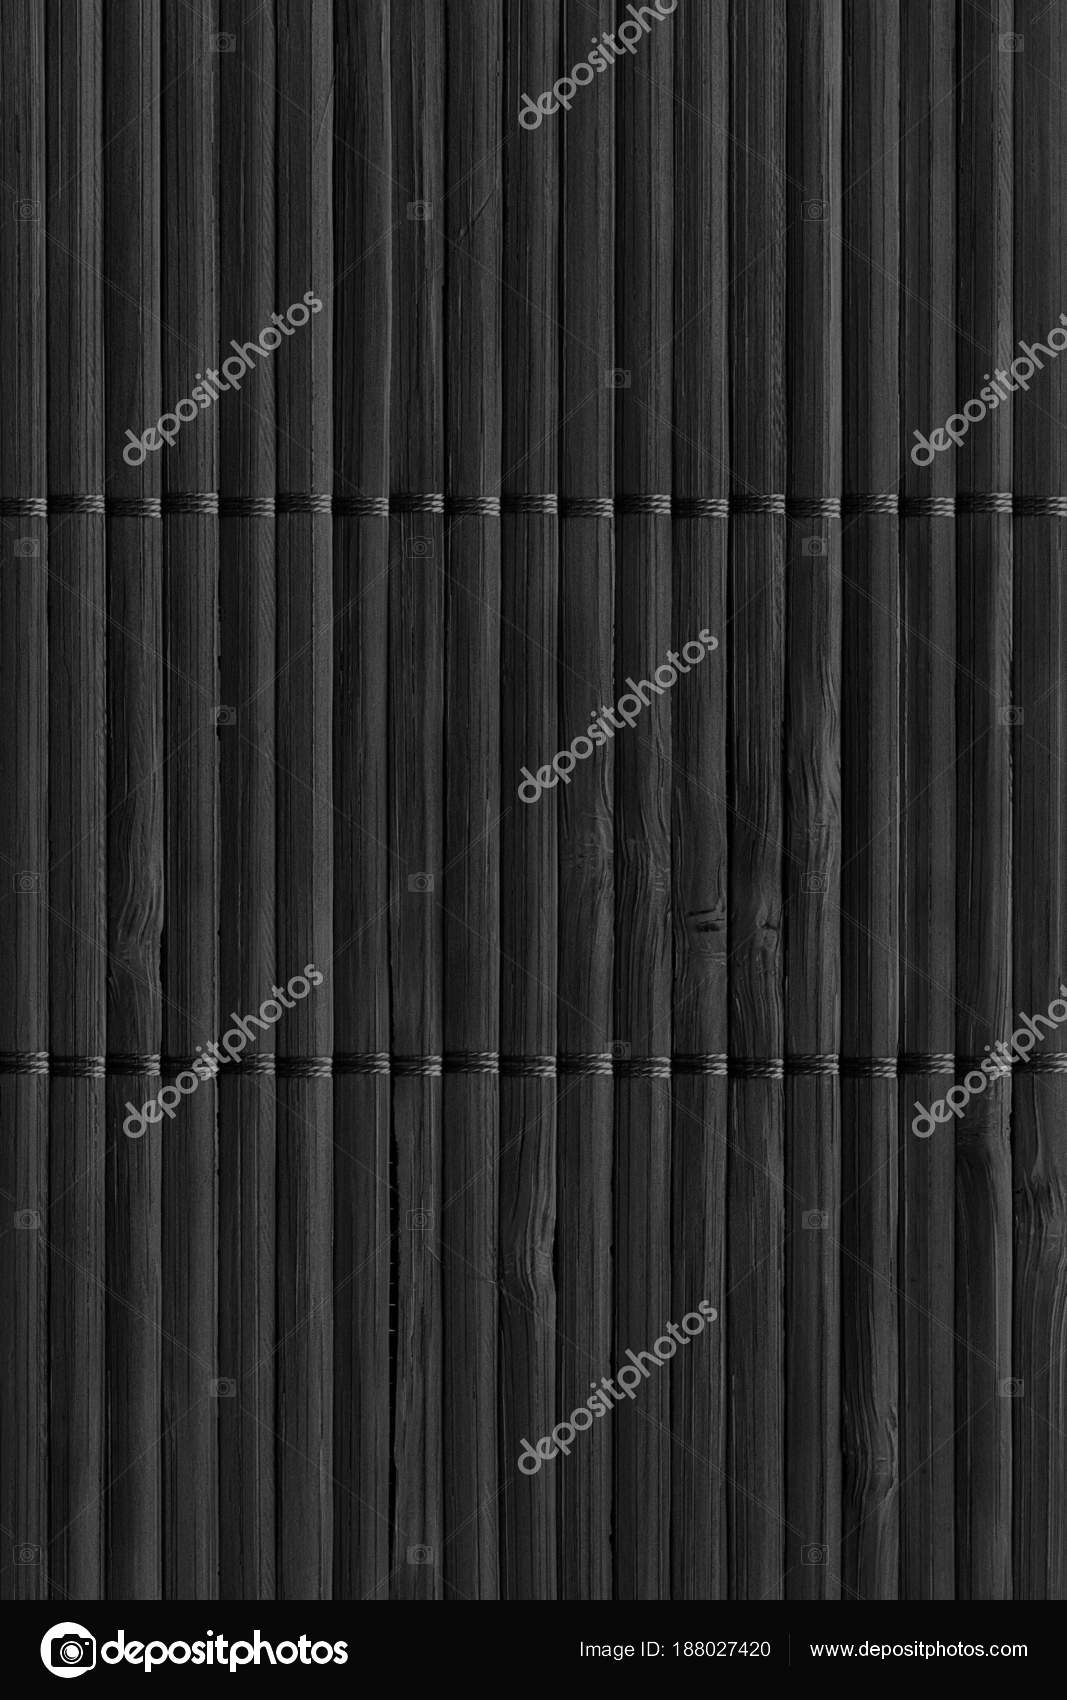 Black Rustic Slatted Bamboo Place Mat Interlaced Coarse Grain Grunge Texture Stock Photo